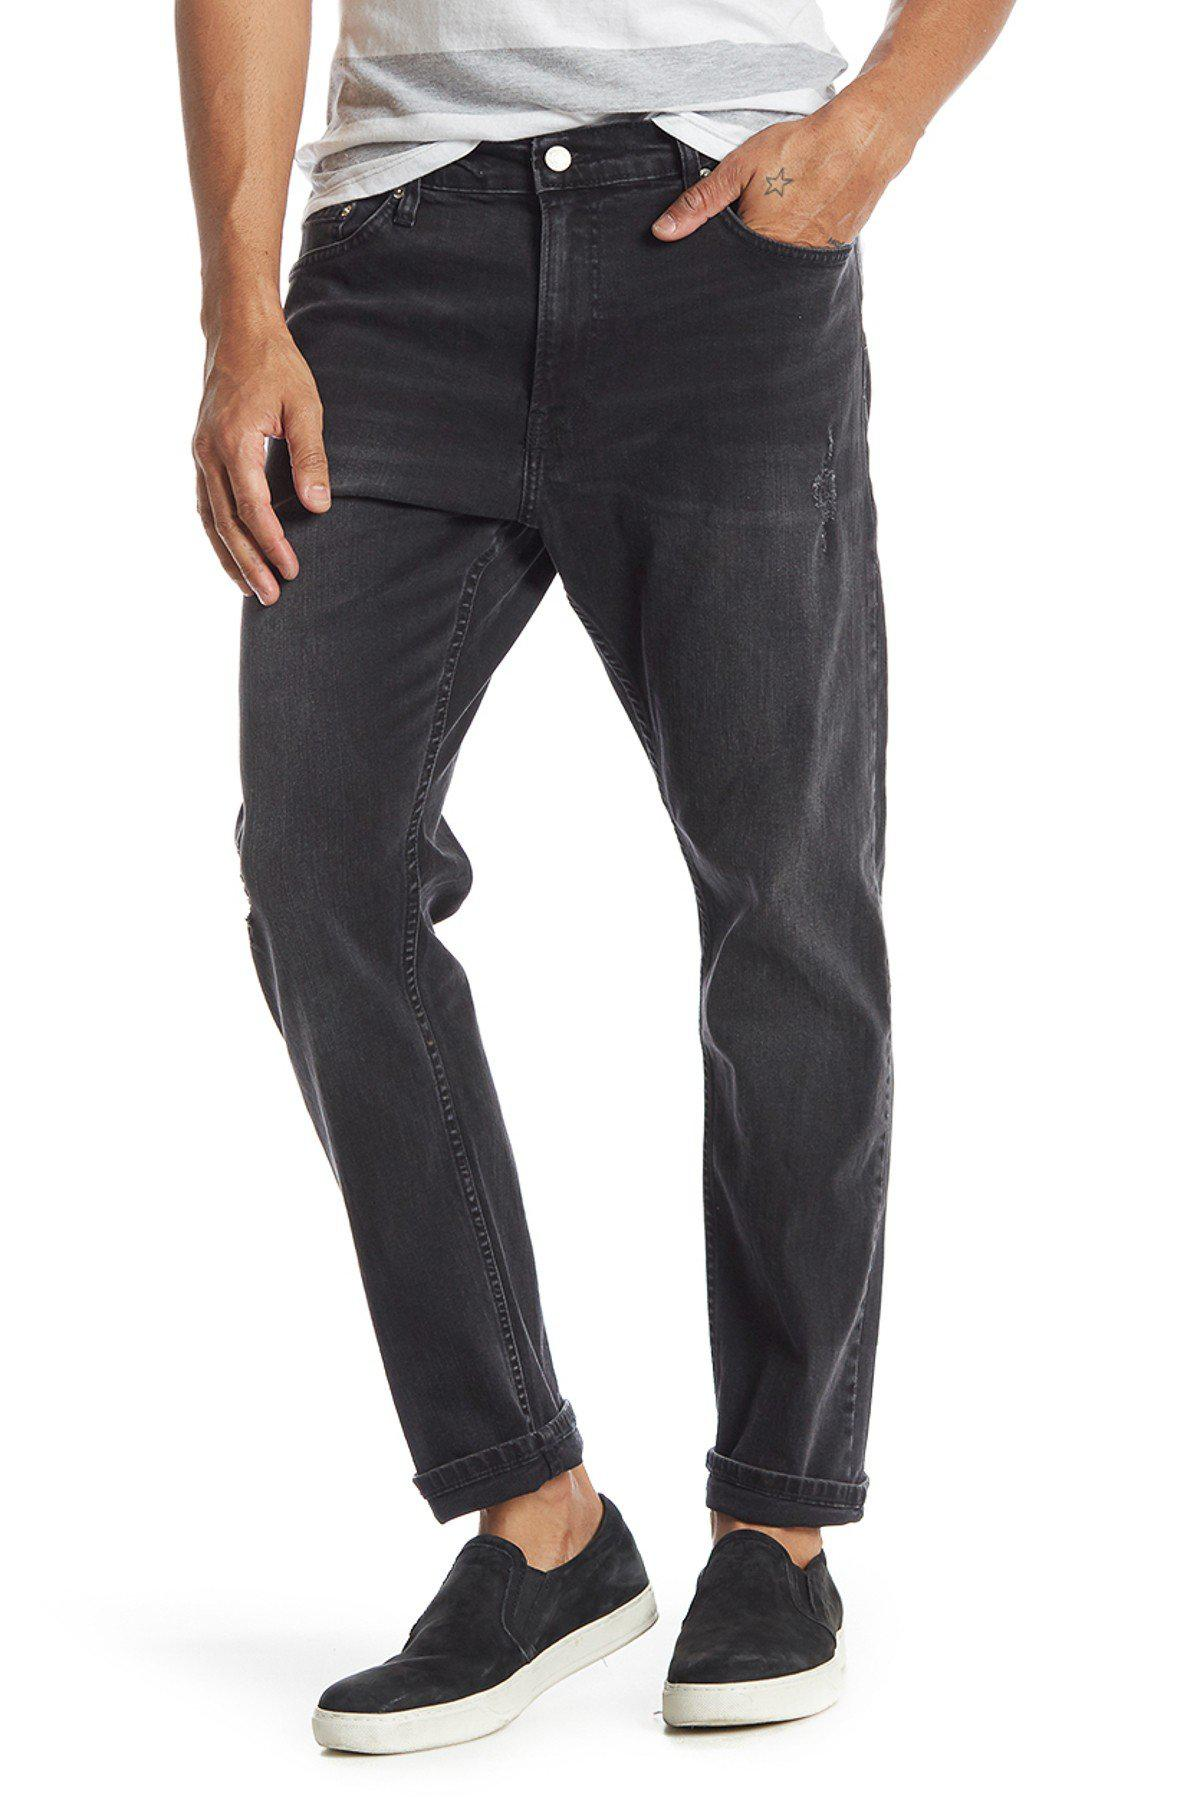 "Calvin Klein Slim Fit Jeans - 32"" Inseam"